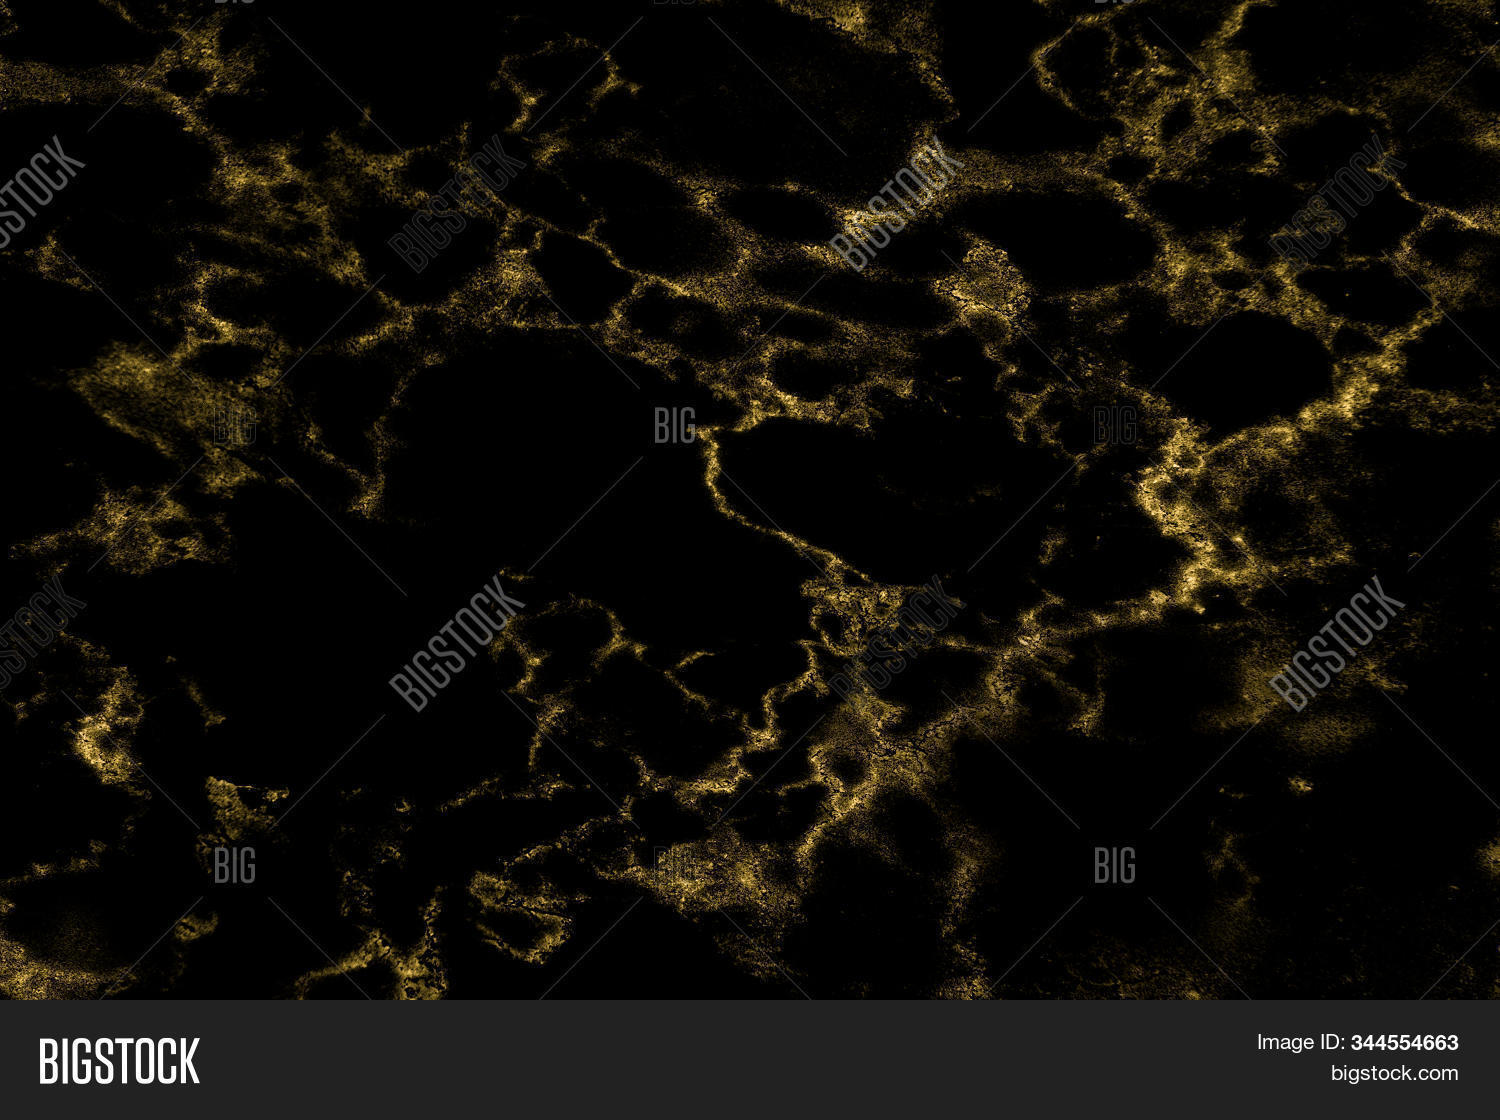 Black Marble Gold Image Photo Free Trial Bigstock